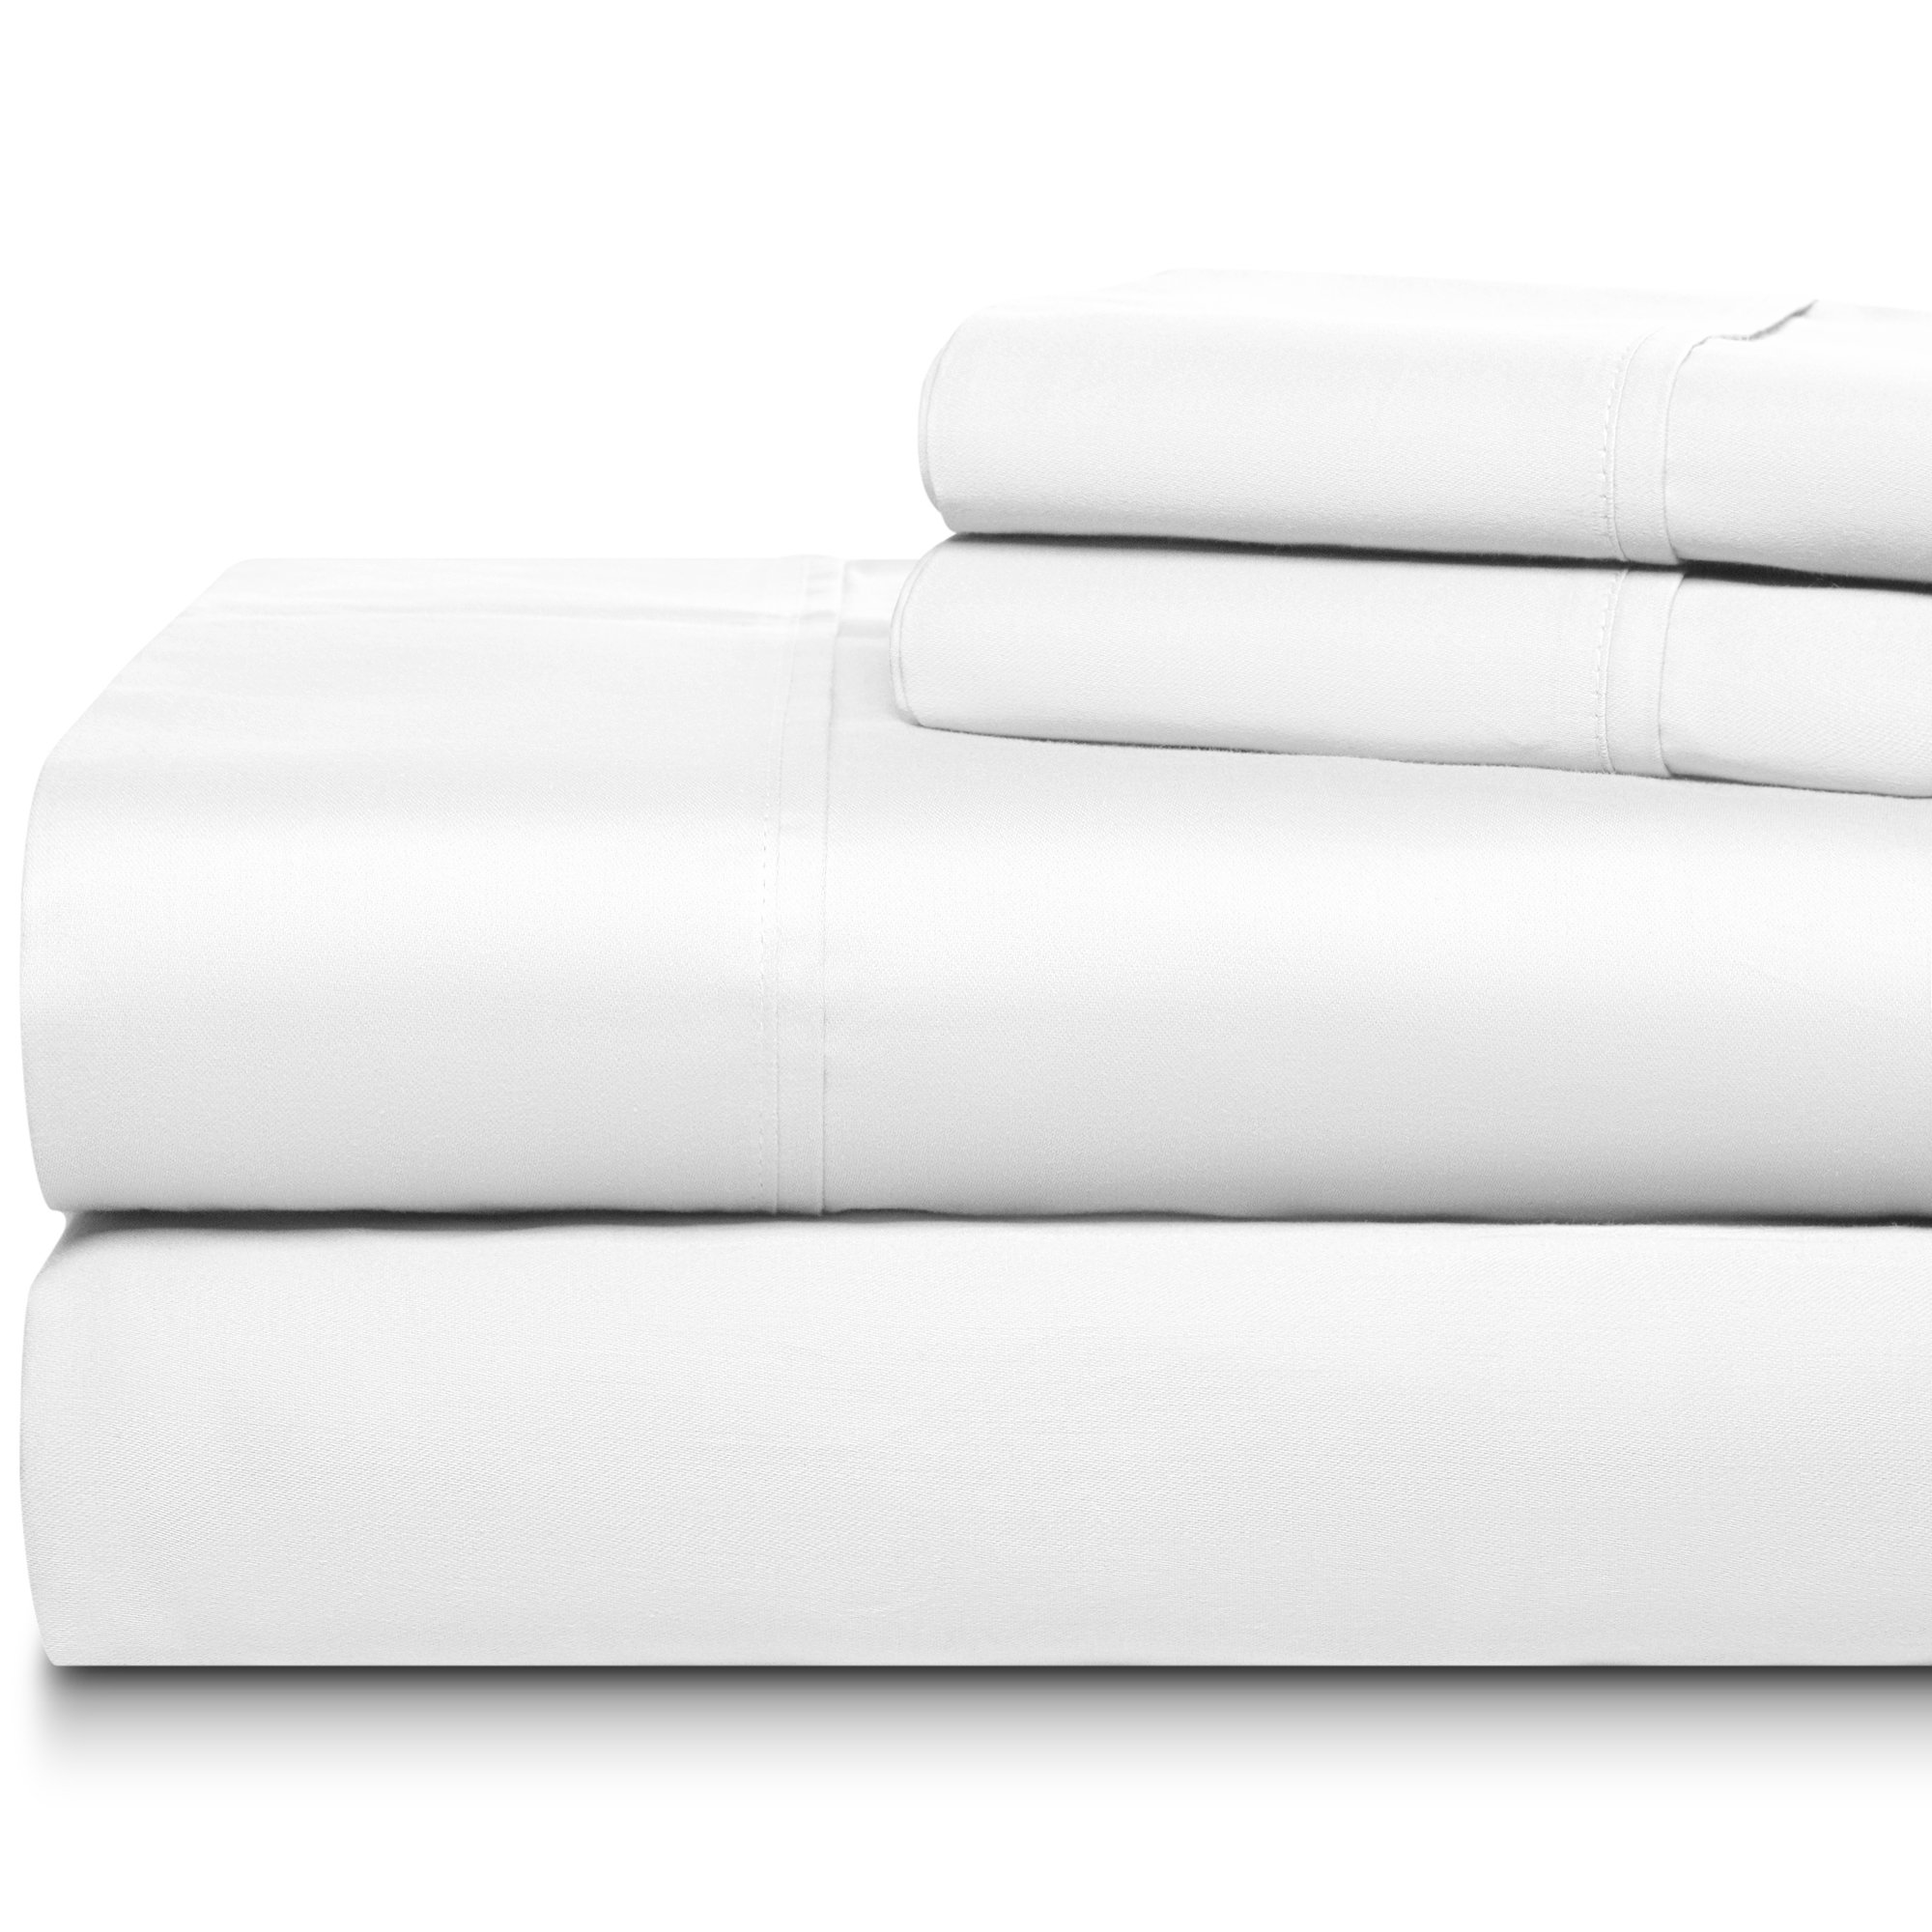 Soft-On 300 Thread Count 4 Piece Luxury Sheet Sets 100% Long Staple Soft Egyptian Quality Cotton with 15'' Deep Pockets, King, Smooth and Soft Sateen Weave, Anti-Fade Luxury Hotel Collection, White